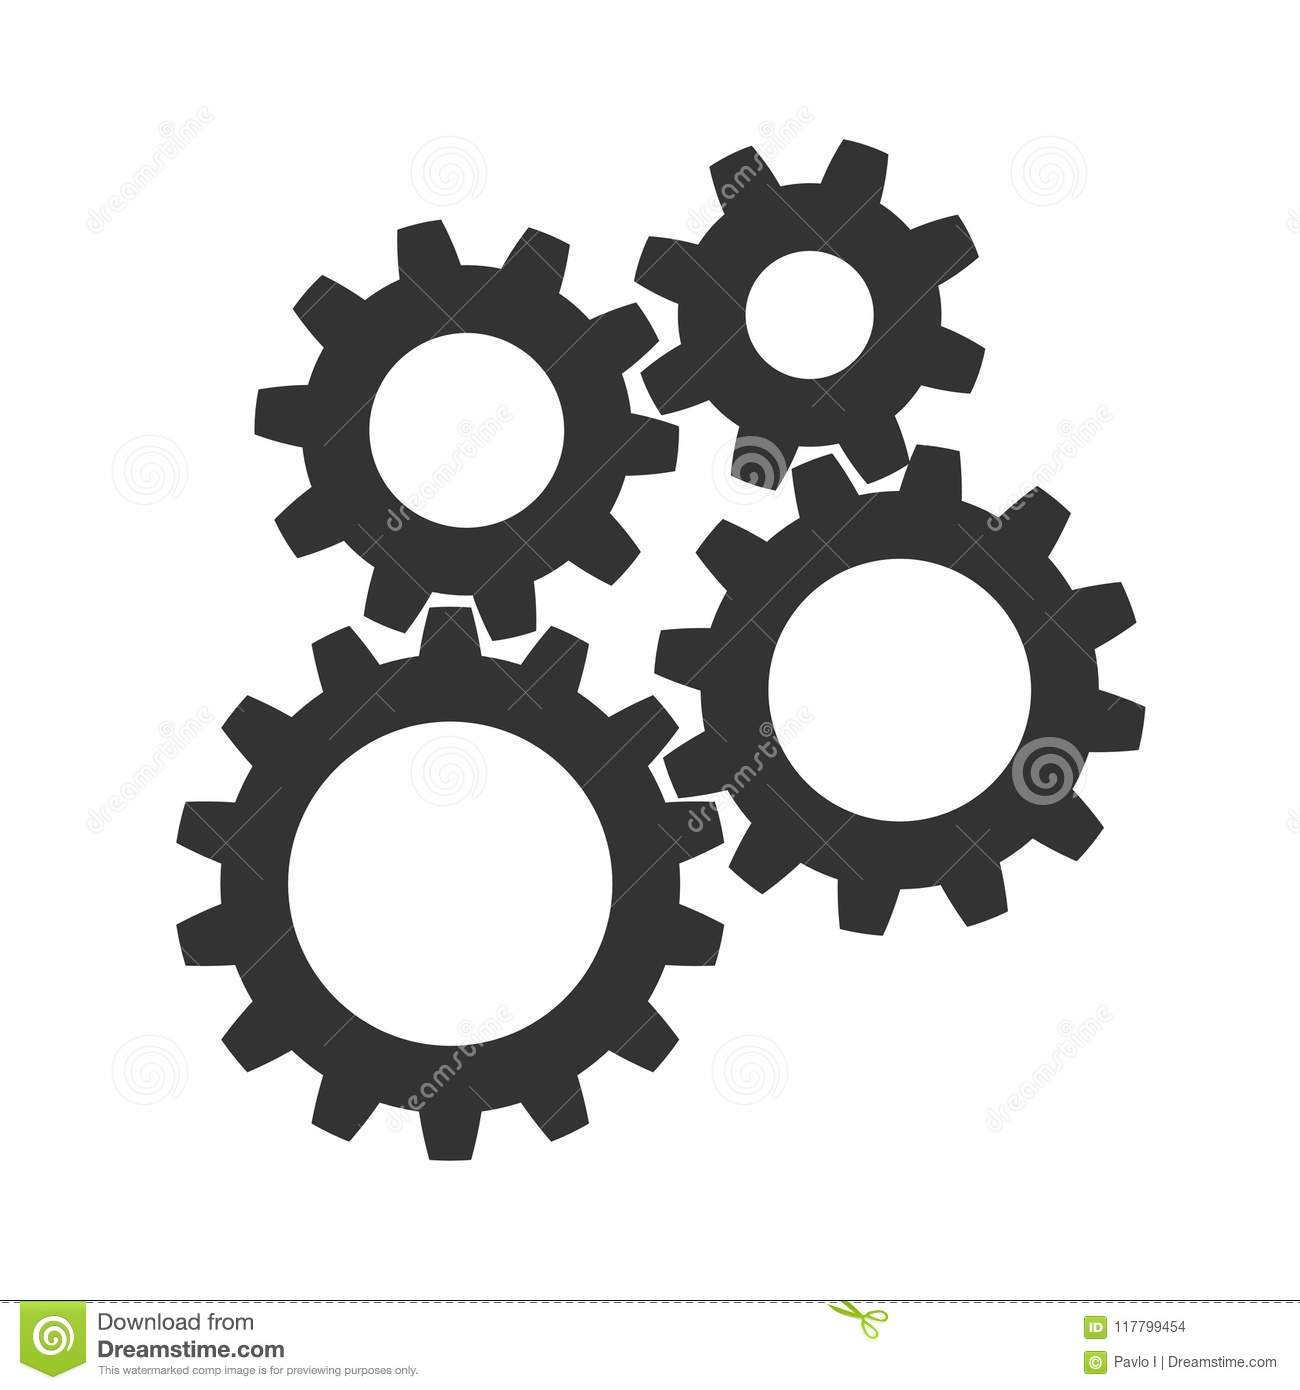 Teamwork, concept business success, colored set gear icon illustration - vector